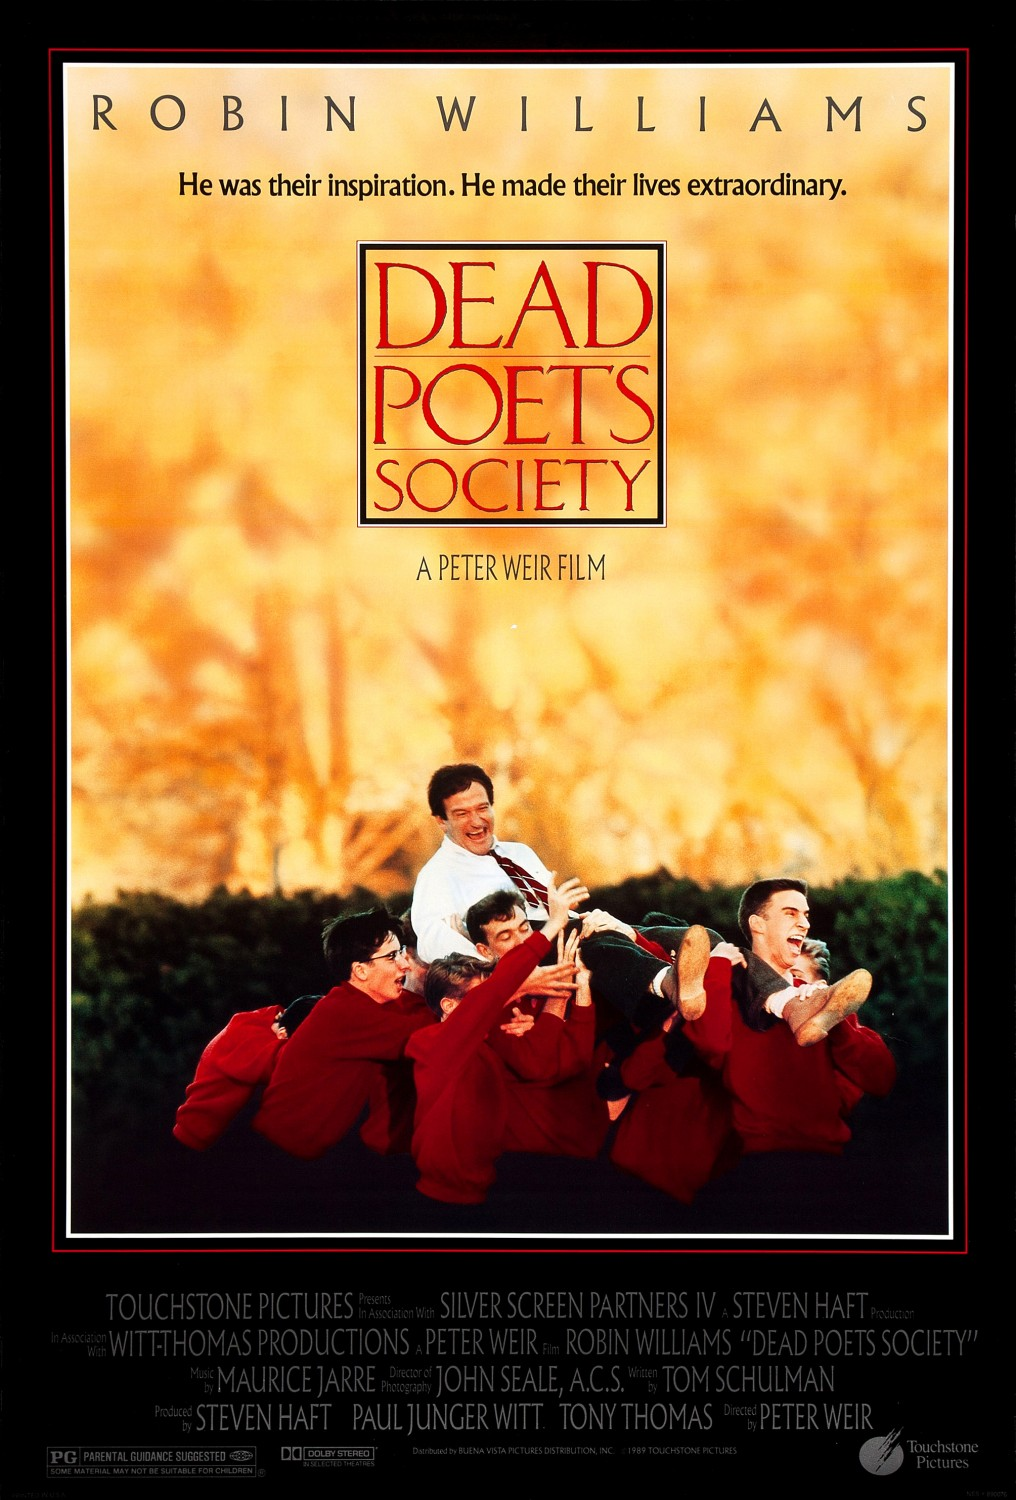 Dead Poets Society (1989) - Directed by: Peter WeirStarring: Robin Williams, Robert Sean Leonard, Ethan Hawke, Josh CharlesRated: PGRunning Time: 2 h 8 mTMM Score: 4 stars out of 5STRENGTHS: Themes, Writing, Directing, Some ActingWEAKNESSES: Some Melodrama, Knox Overstreet's Character, Somewhat Predictable